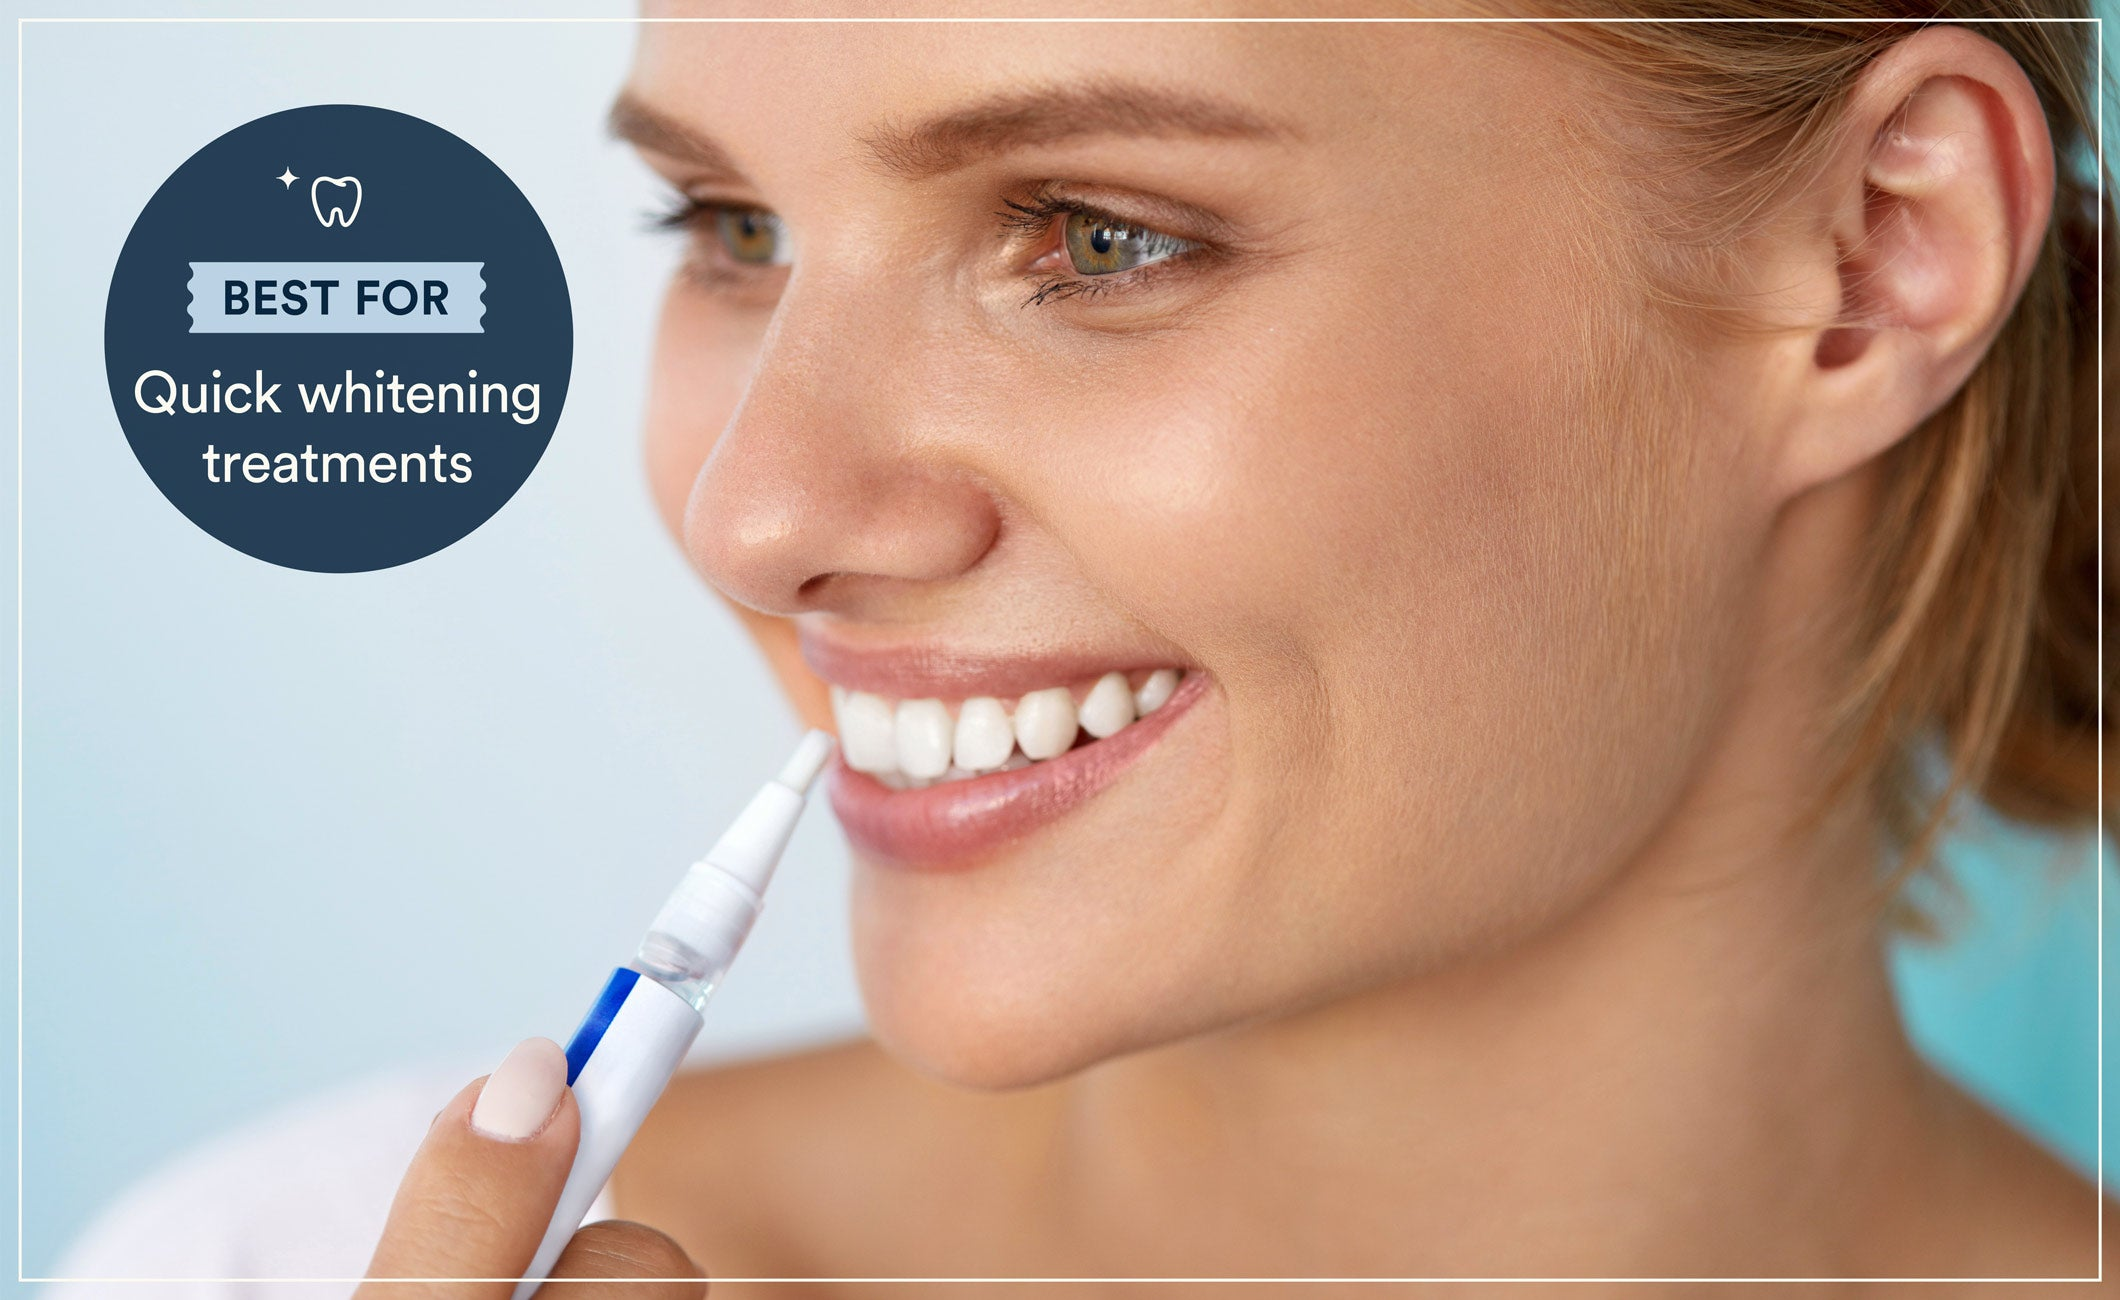 whitening pens are best for quick whitening treatments